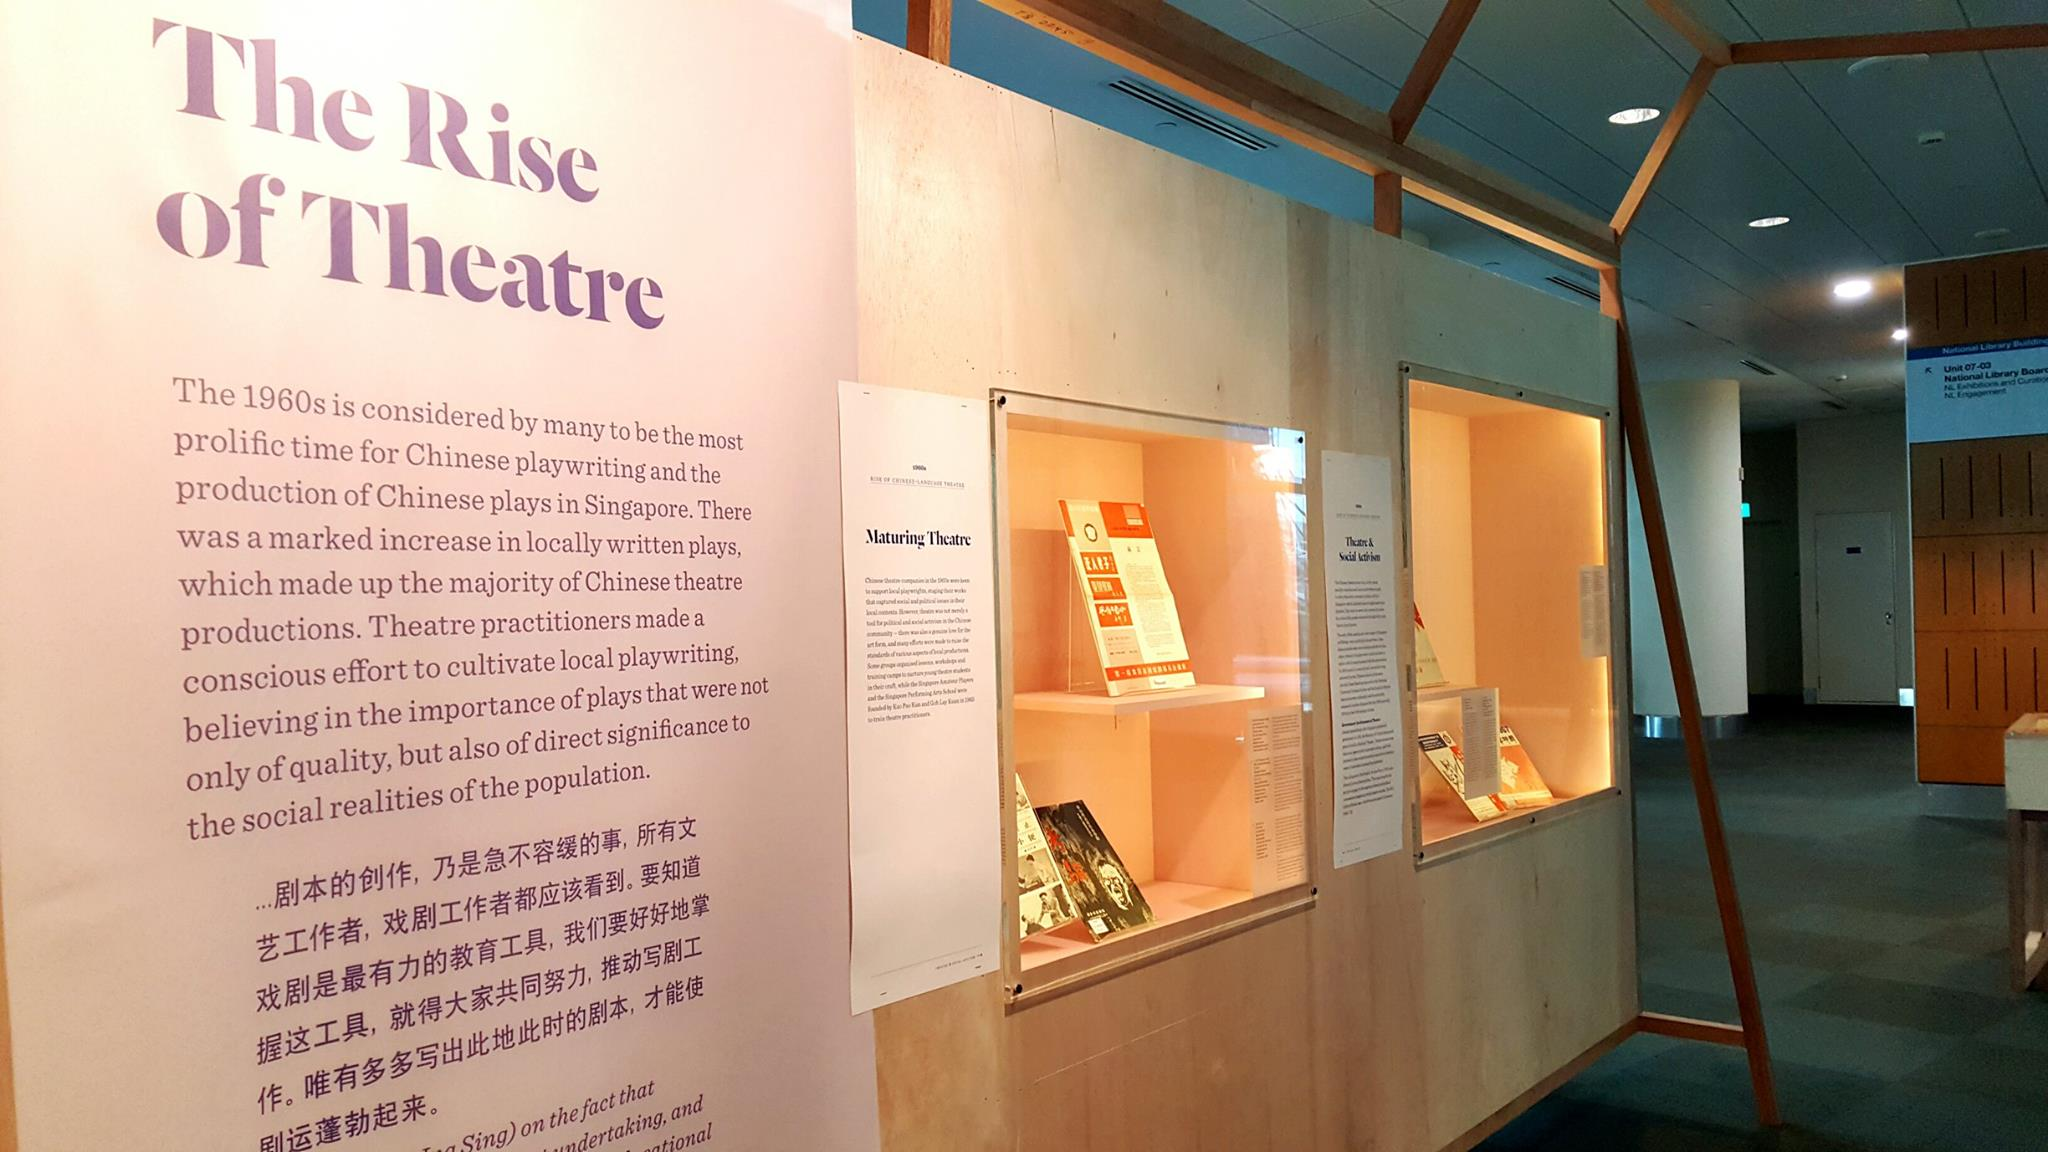 An introduction wall title says 'The Rise of Theatre'. The wall showcases down the tunnel features books.